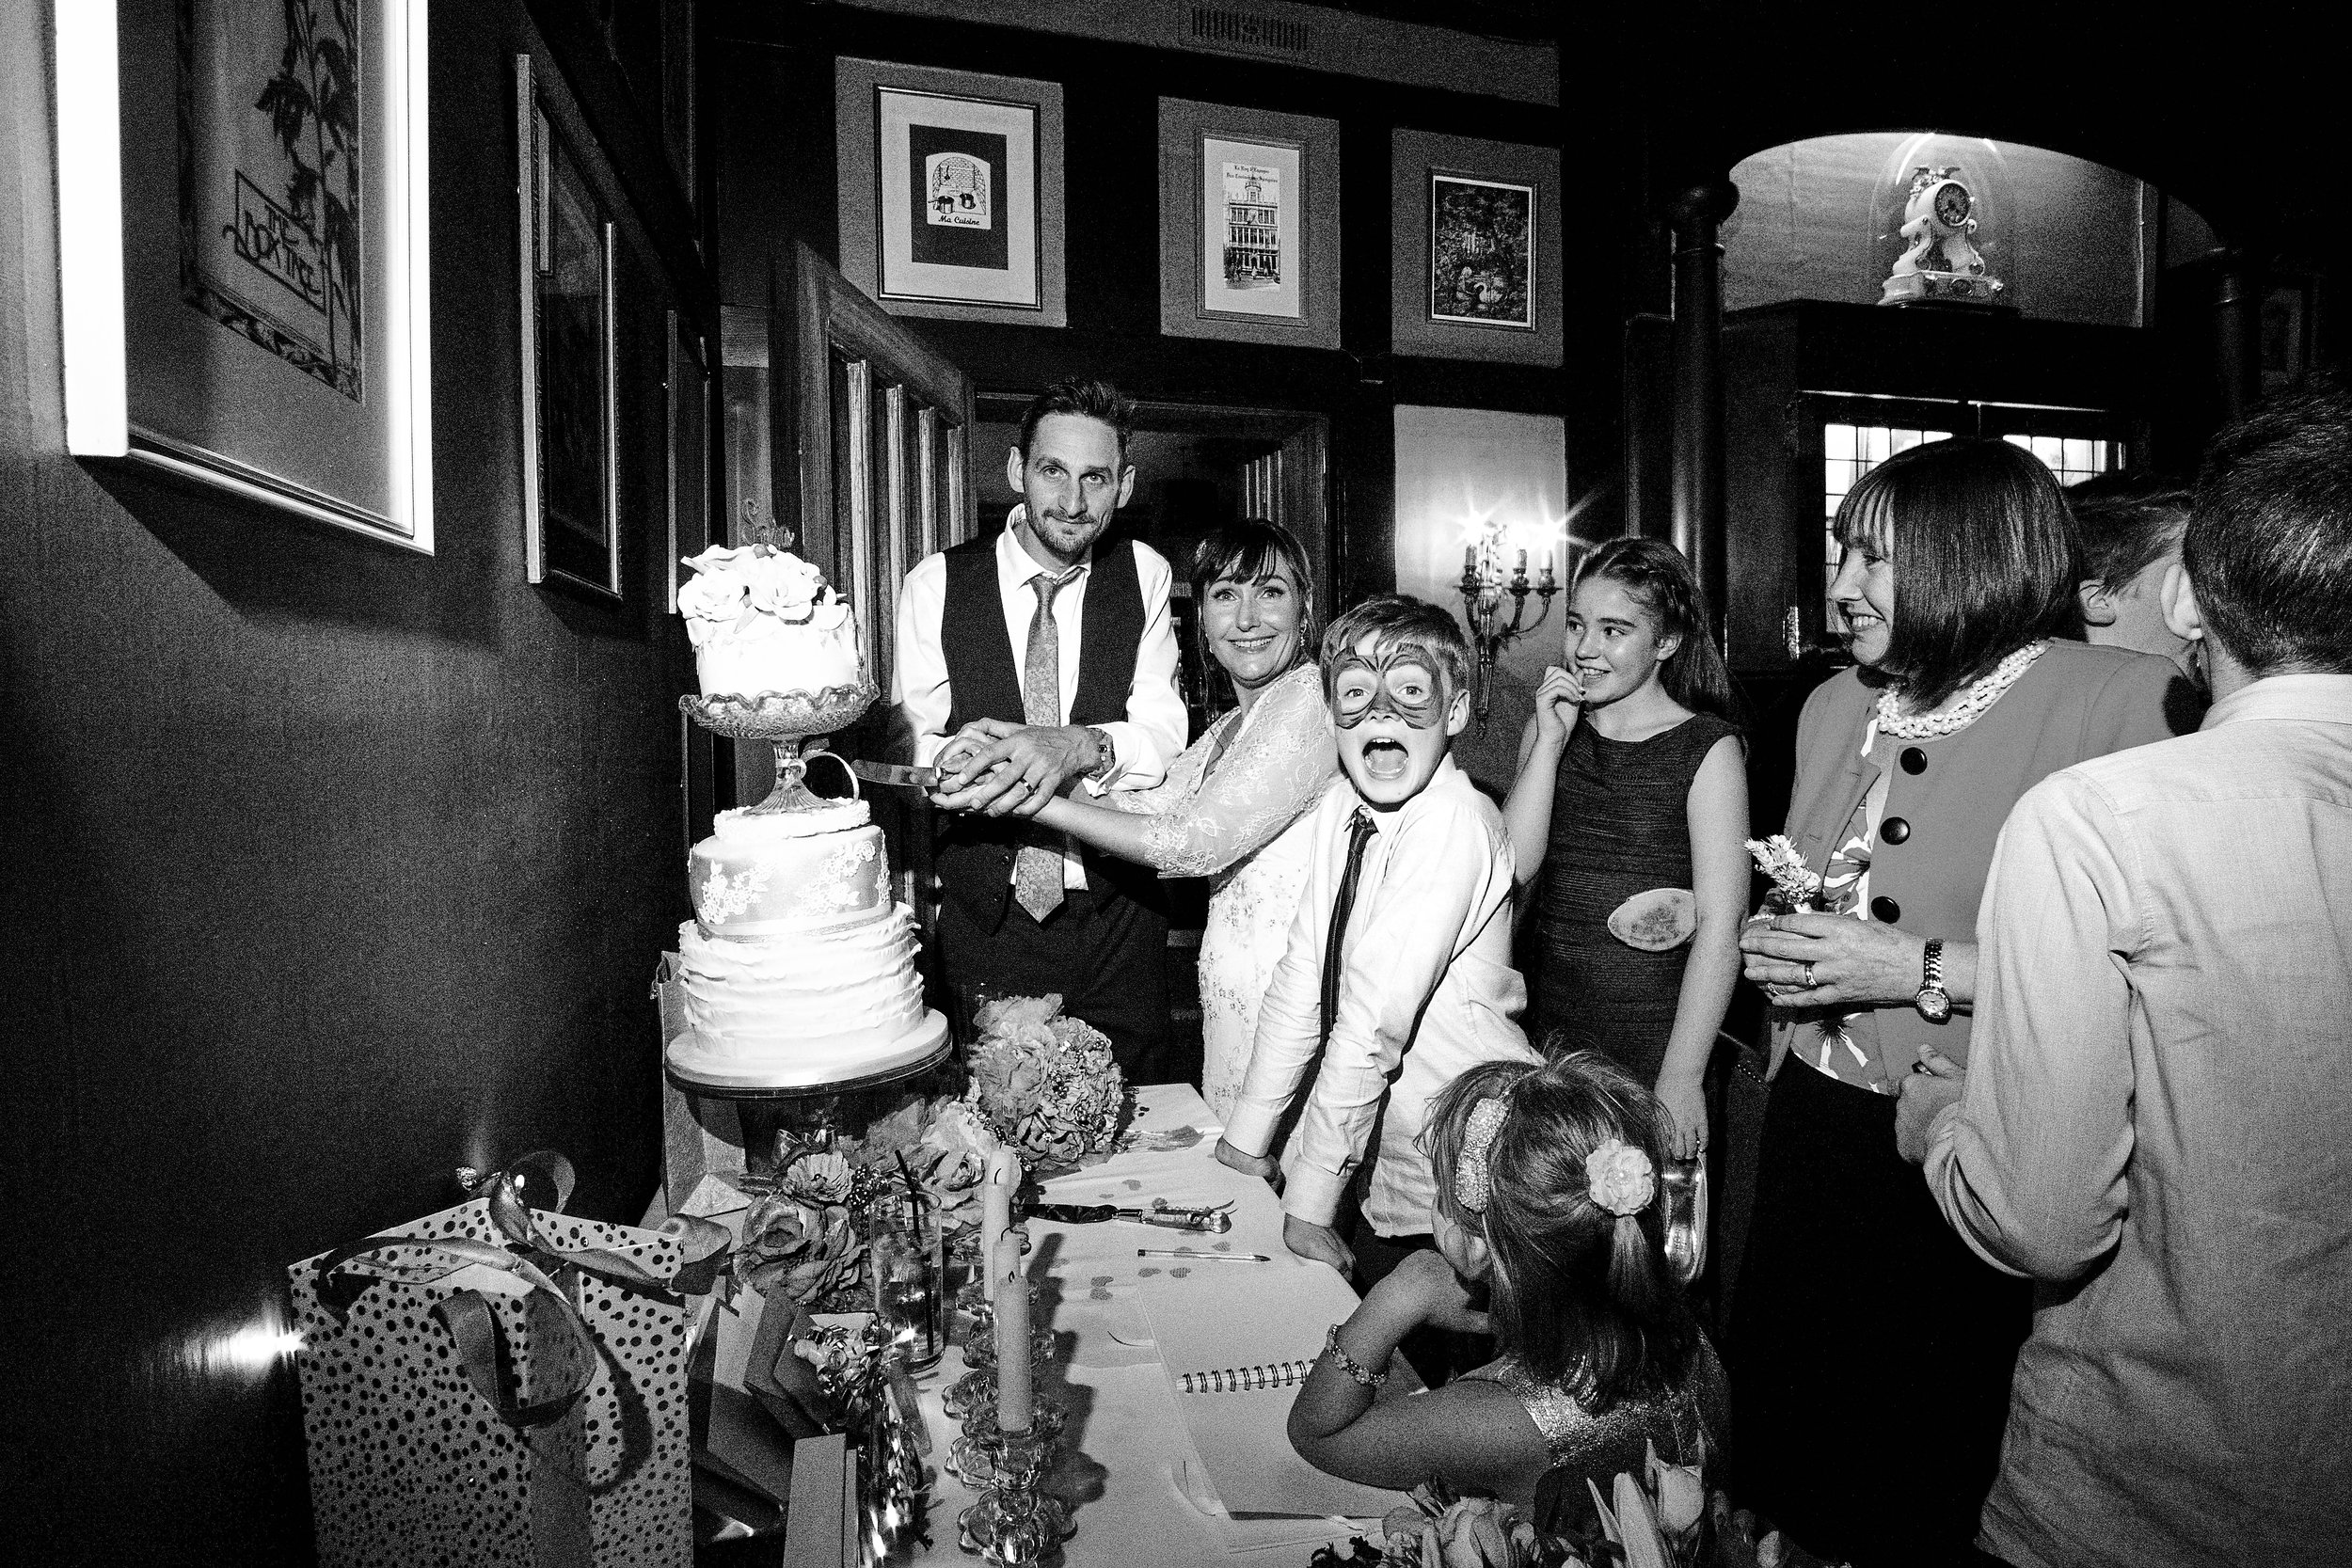 Cutting the cake, surrounded by family and friends - A Cheshire wedding at The Belle Epoque in Knutsford